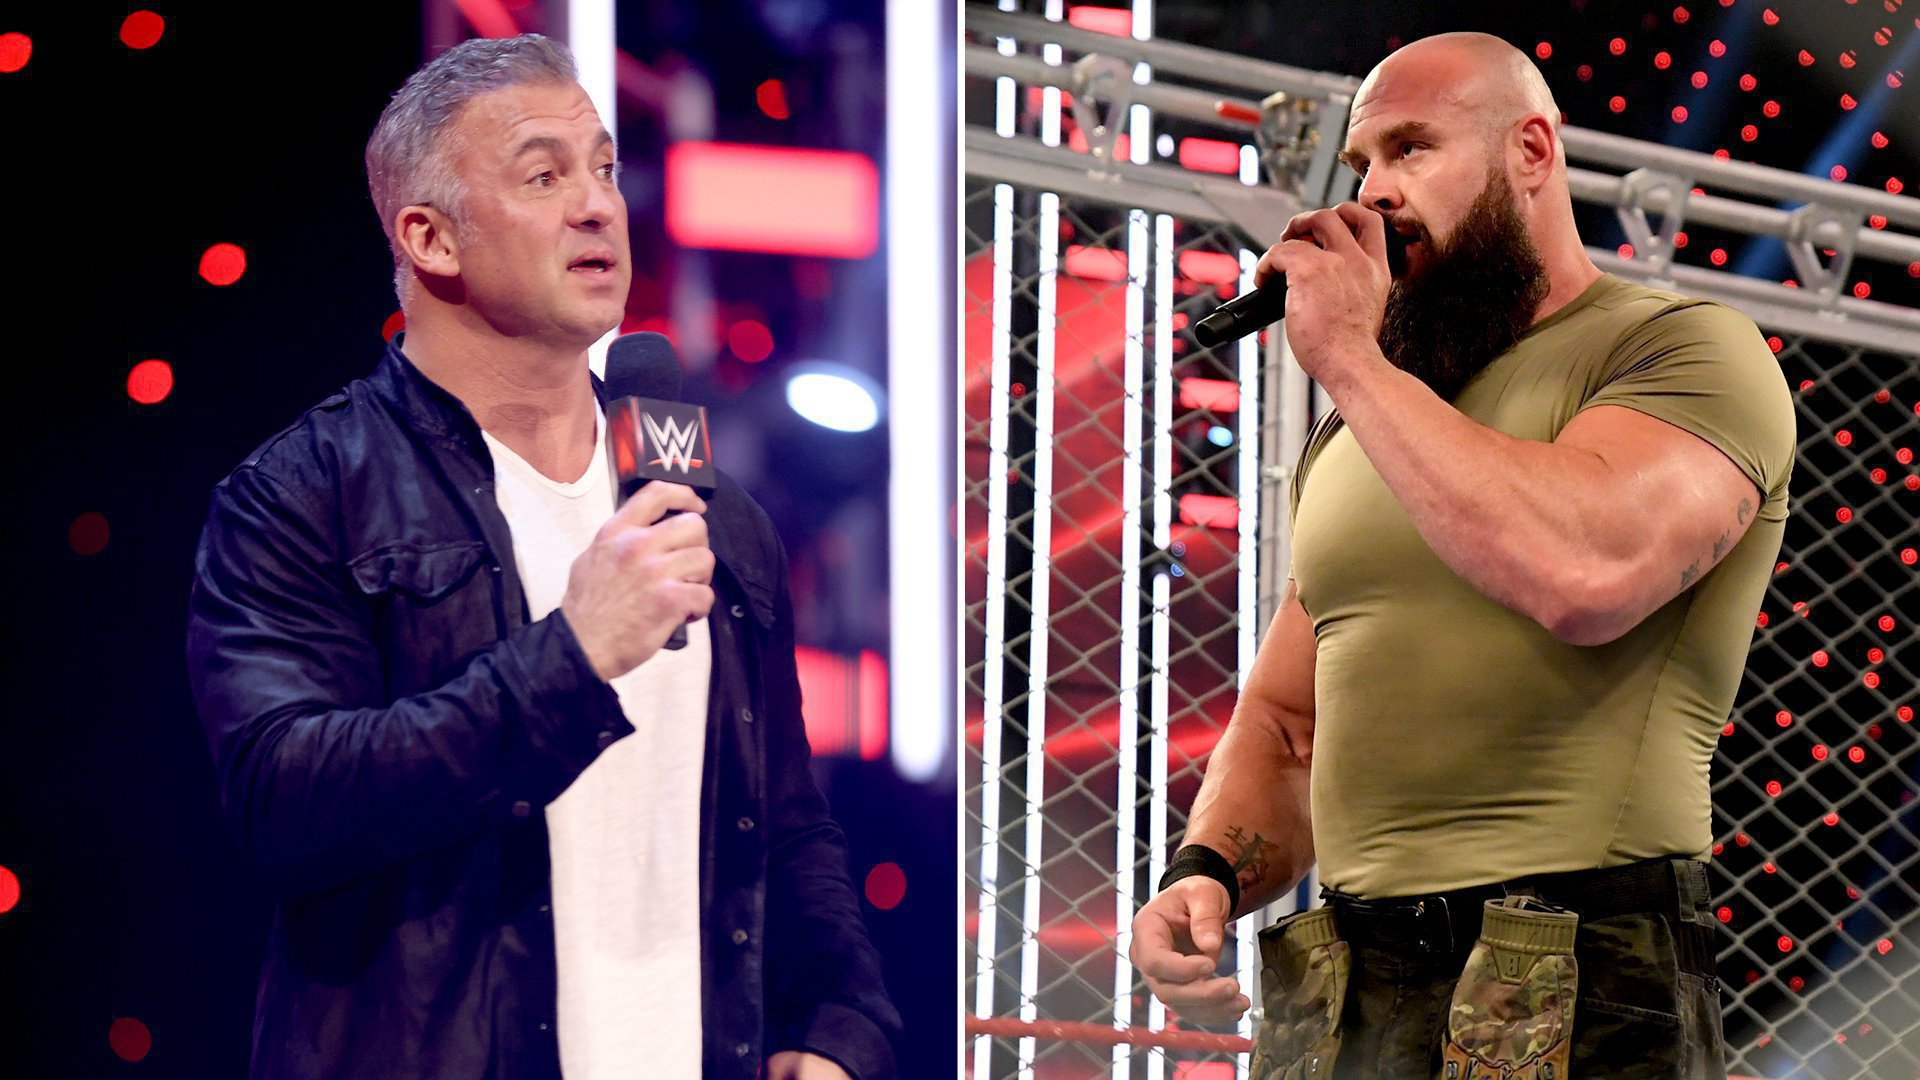 Revealed: Shane McMahon's Salary In WWE For 2020-21 Financial Year 21